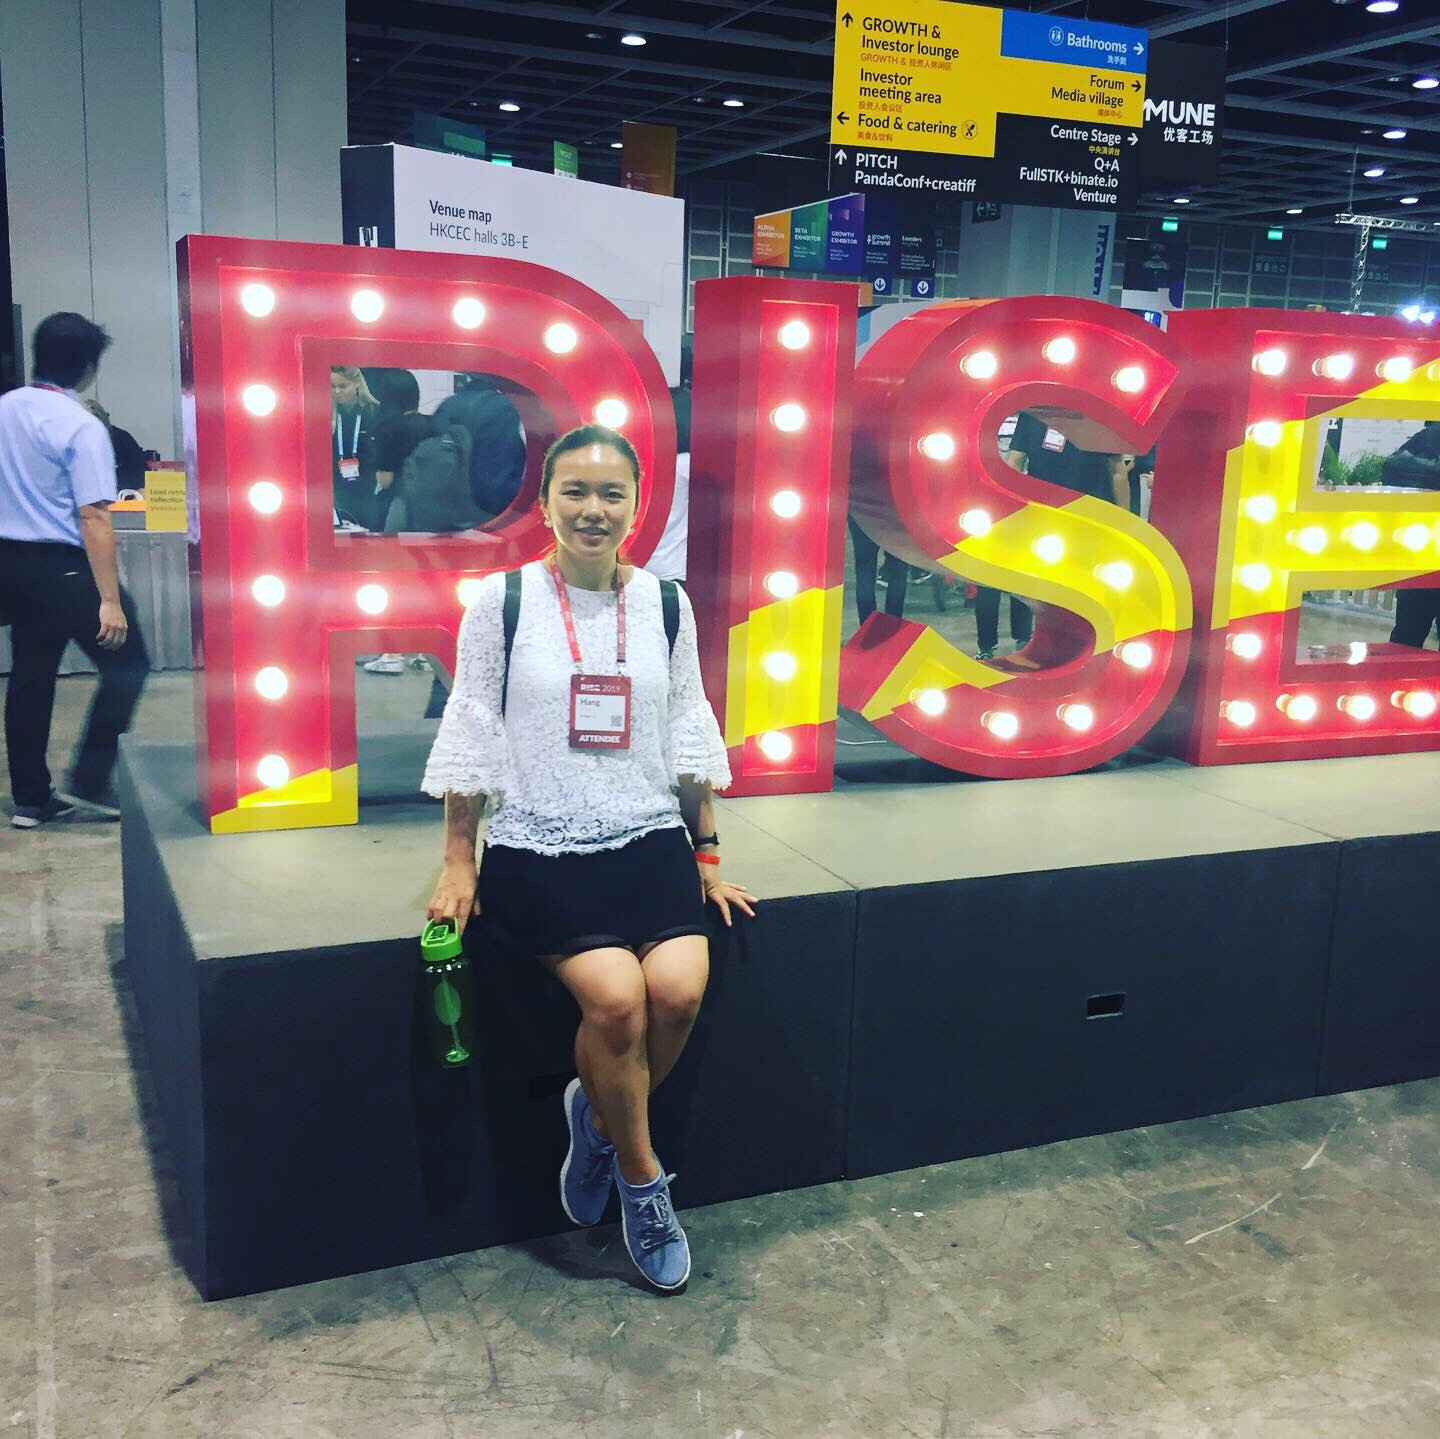 A picture of me with RISE sign on the background at RISE Conference 2019